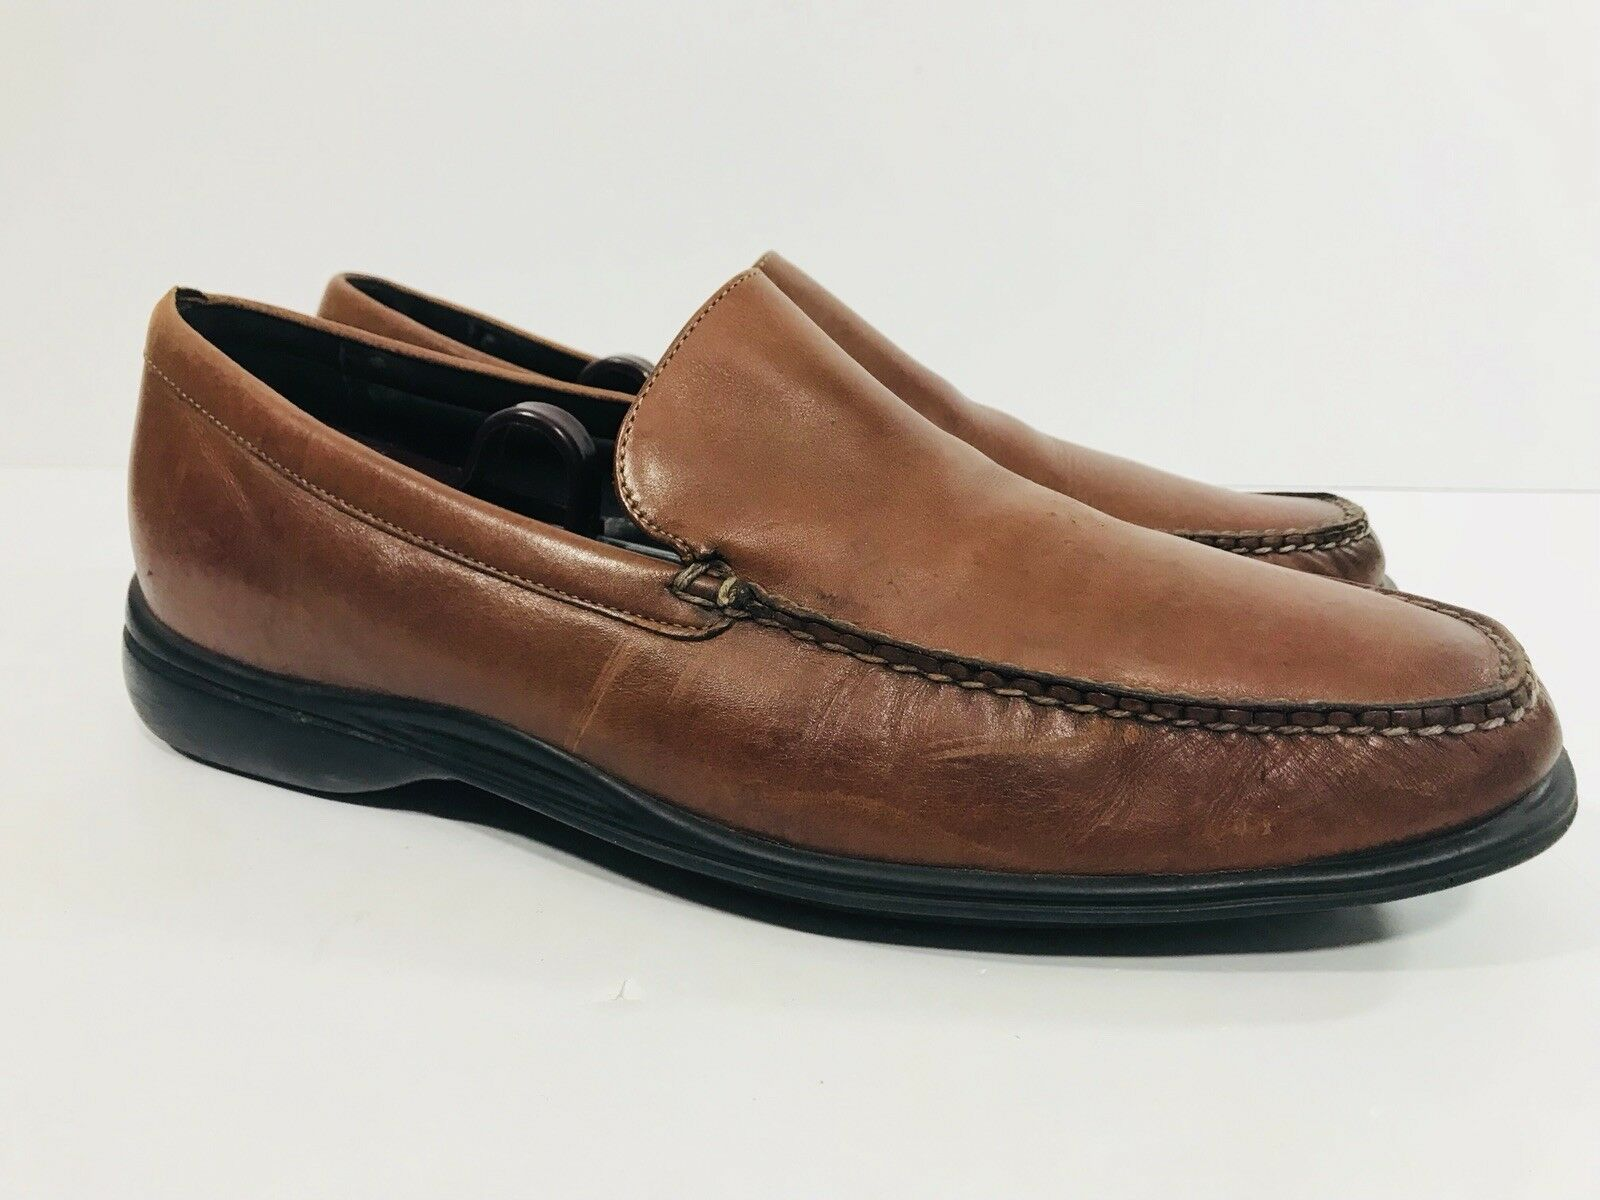 COLE HAAN AIR C08204  Herren Braun Braun Braun Leder Slip On Loafers Schuhes Größe US 10 M 169a9c